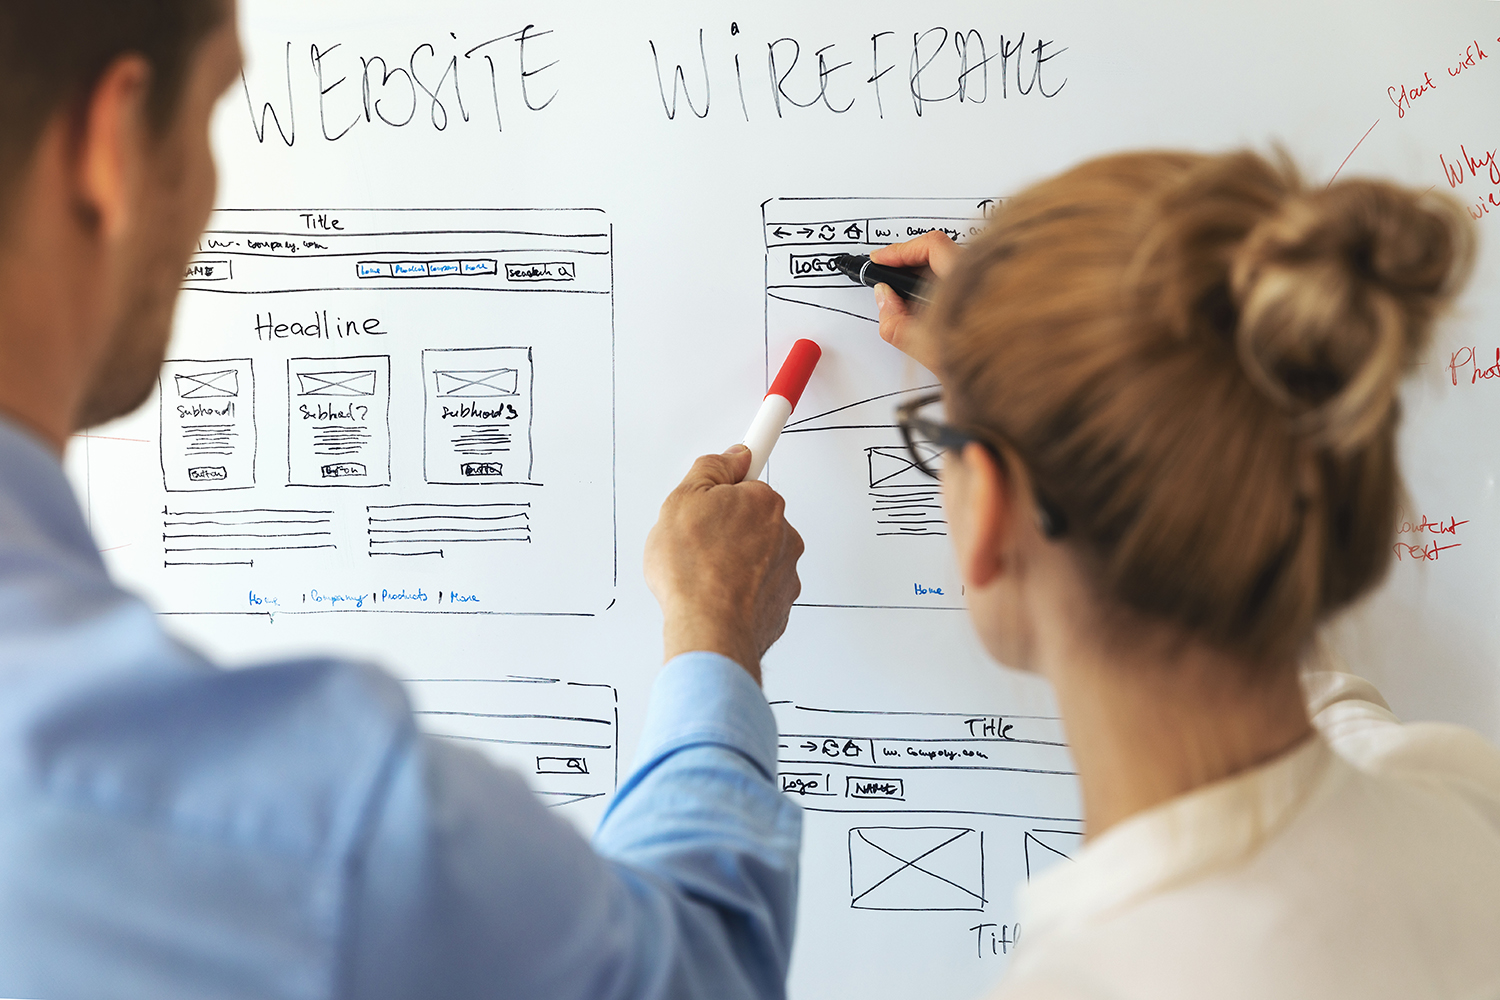 Apeiros Marketing UI UX designers team working on new website wireframe in office